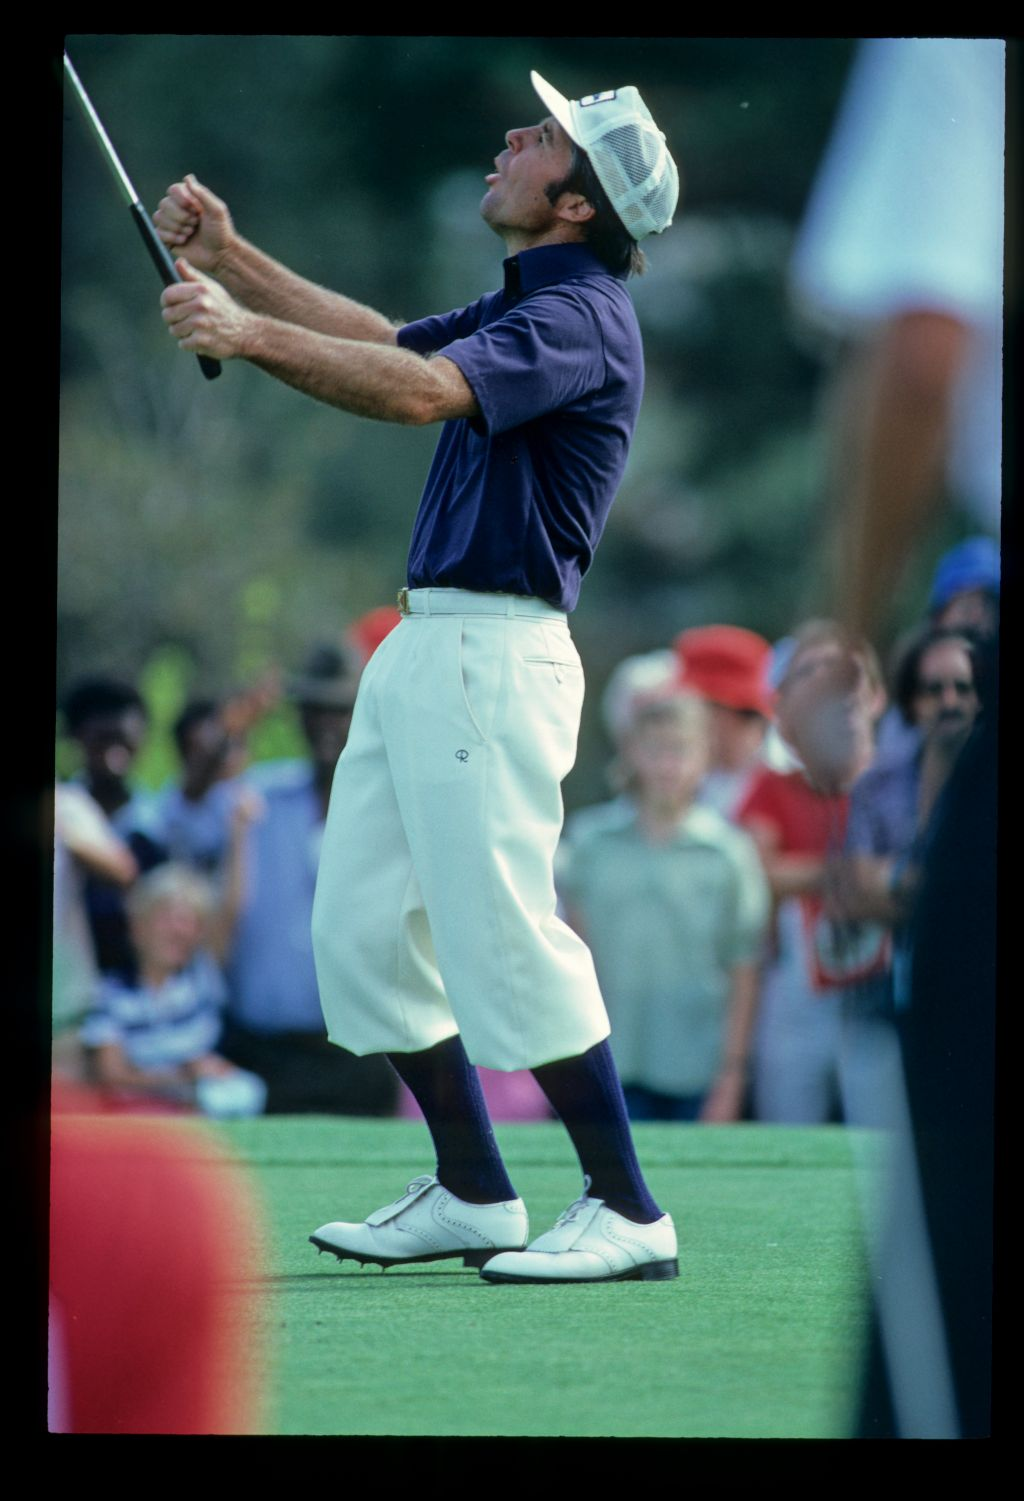 Golfer Gary Player looks to the heavens as he holes a crucial putt at the 1980 Lexington PGA